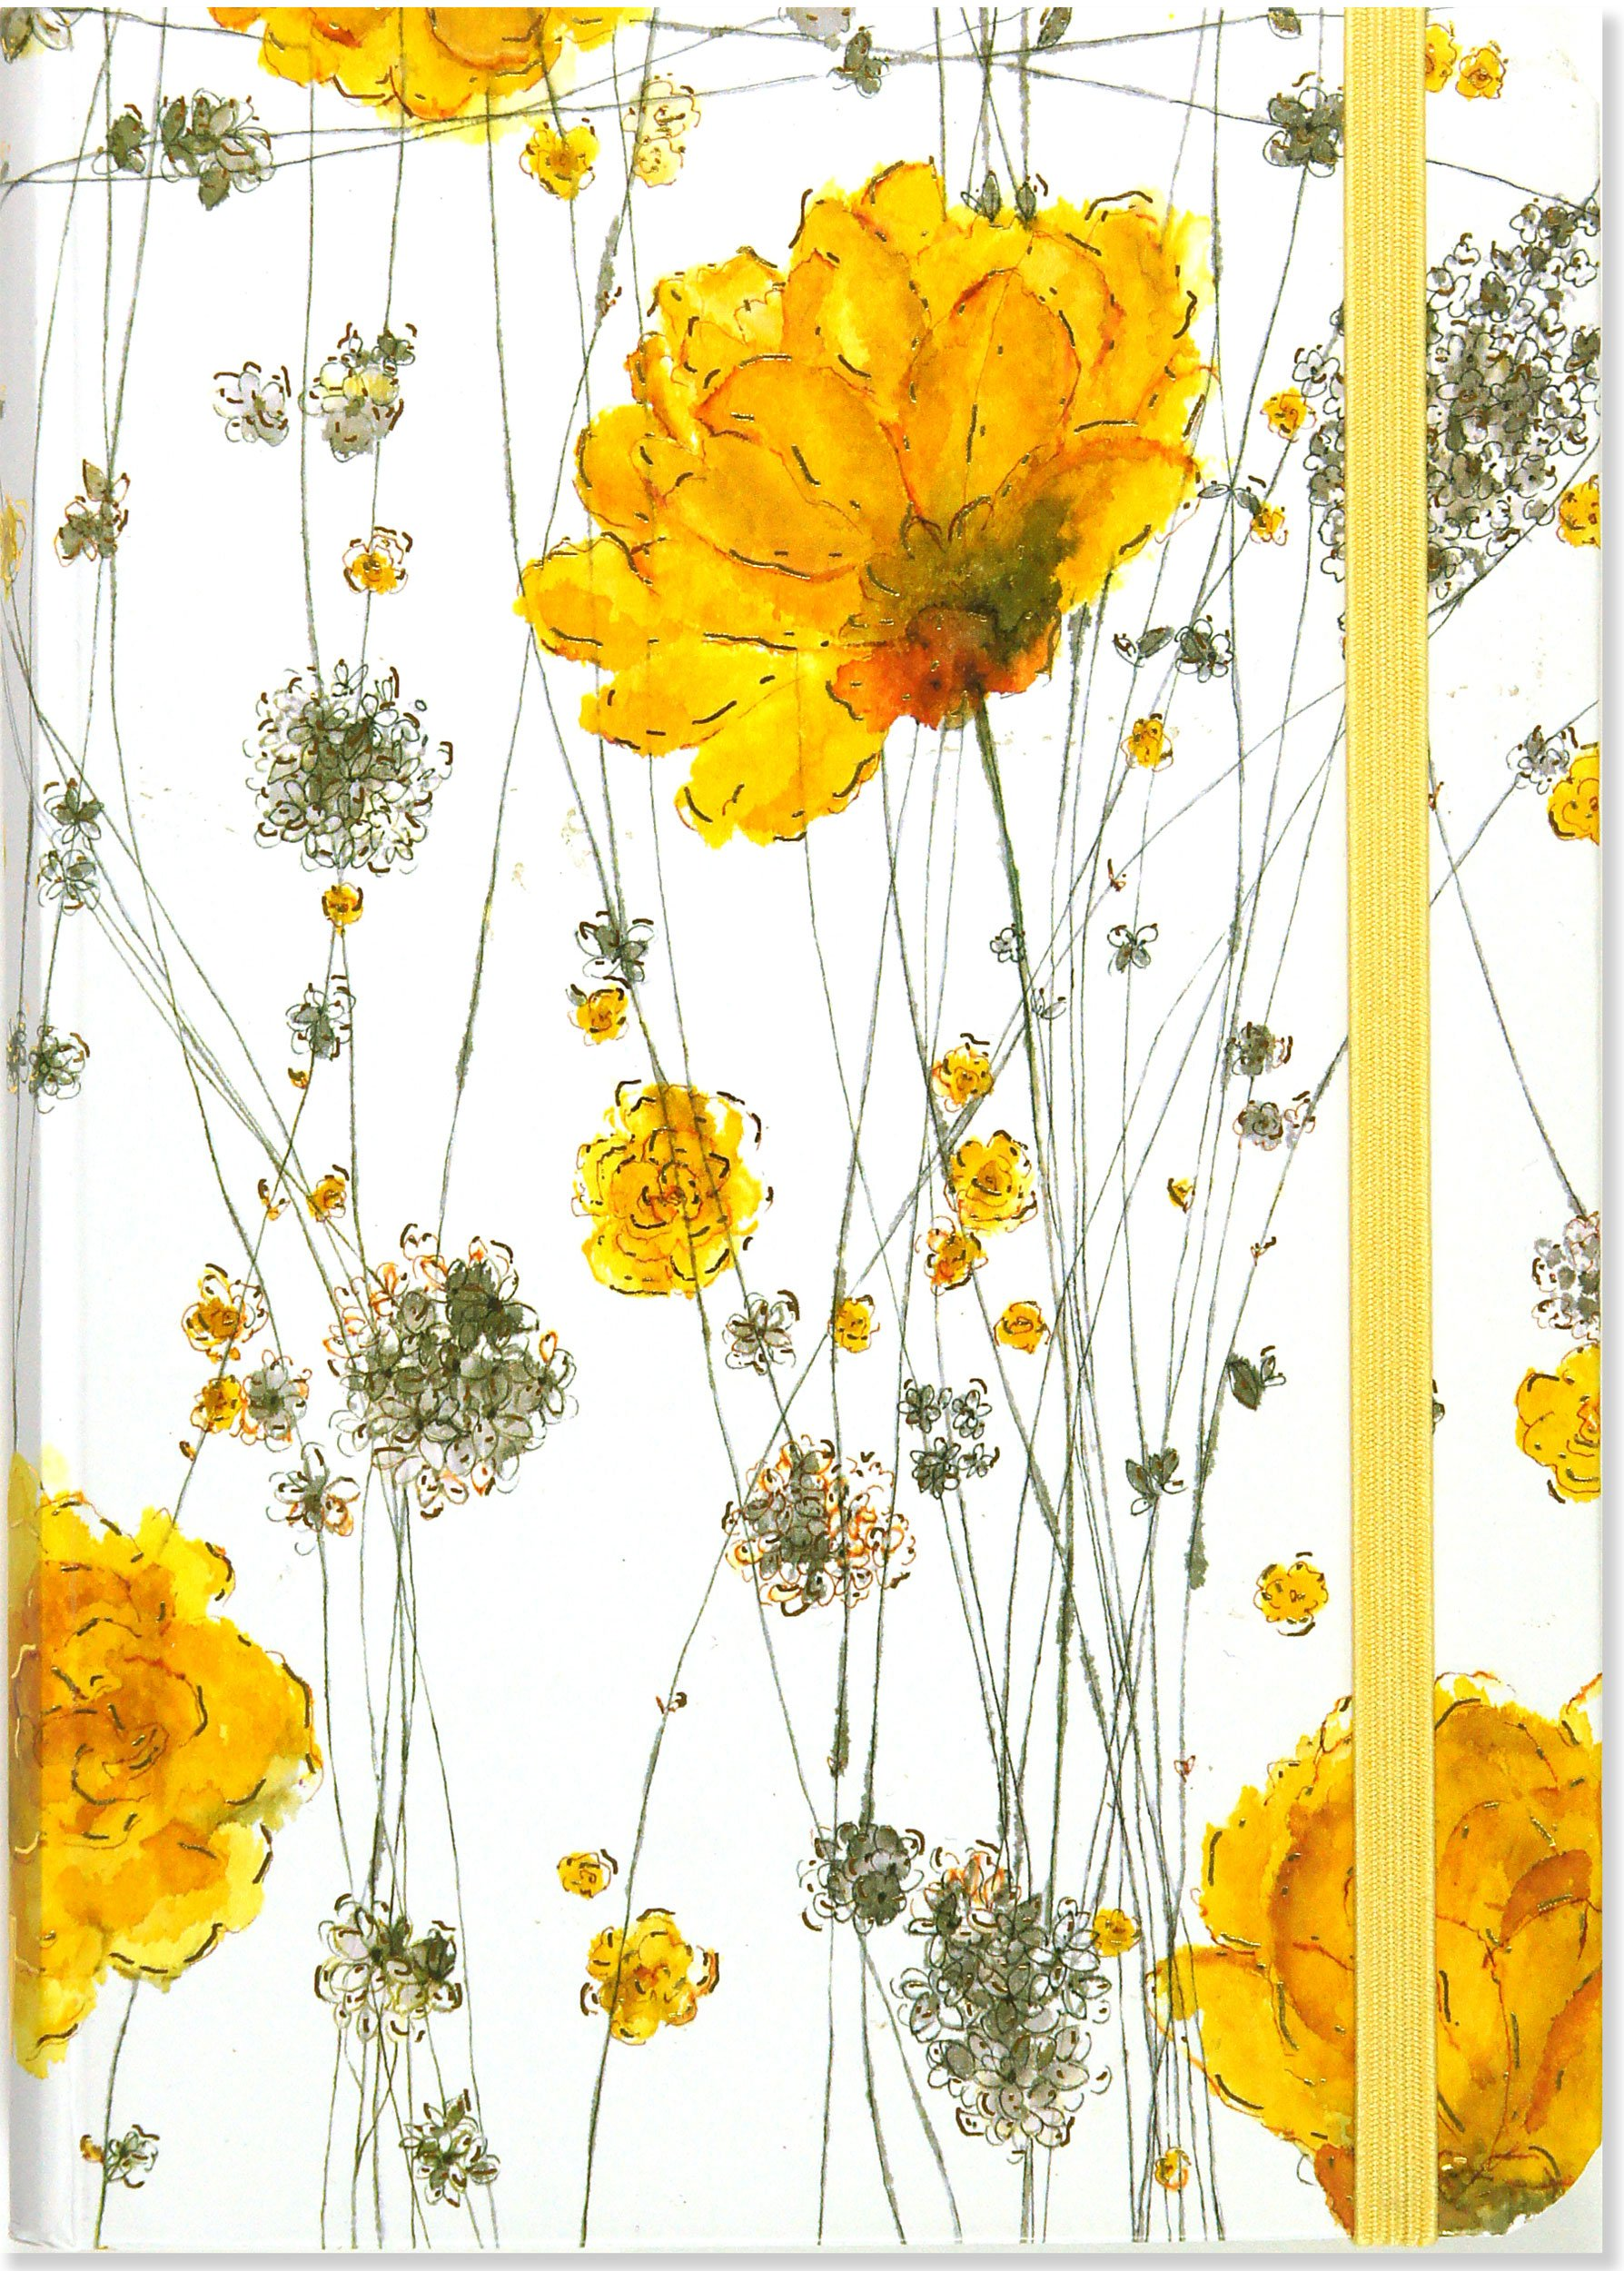 Yellow flowers journal notebook diary small format journals yellow flowers journal notebook diary small format journals peter pauper staff 9781593594855 amazon books mightylinksfo